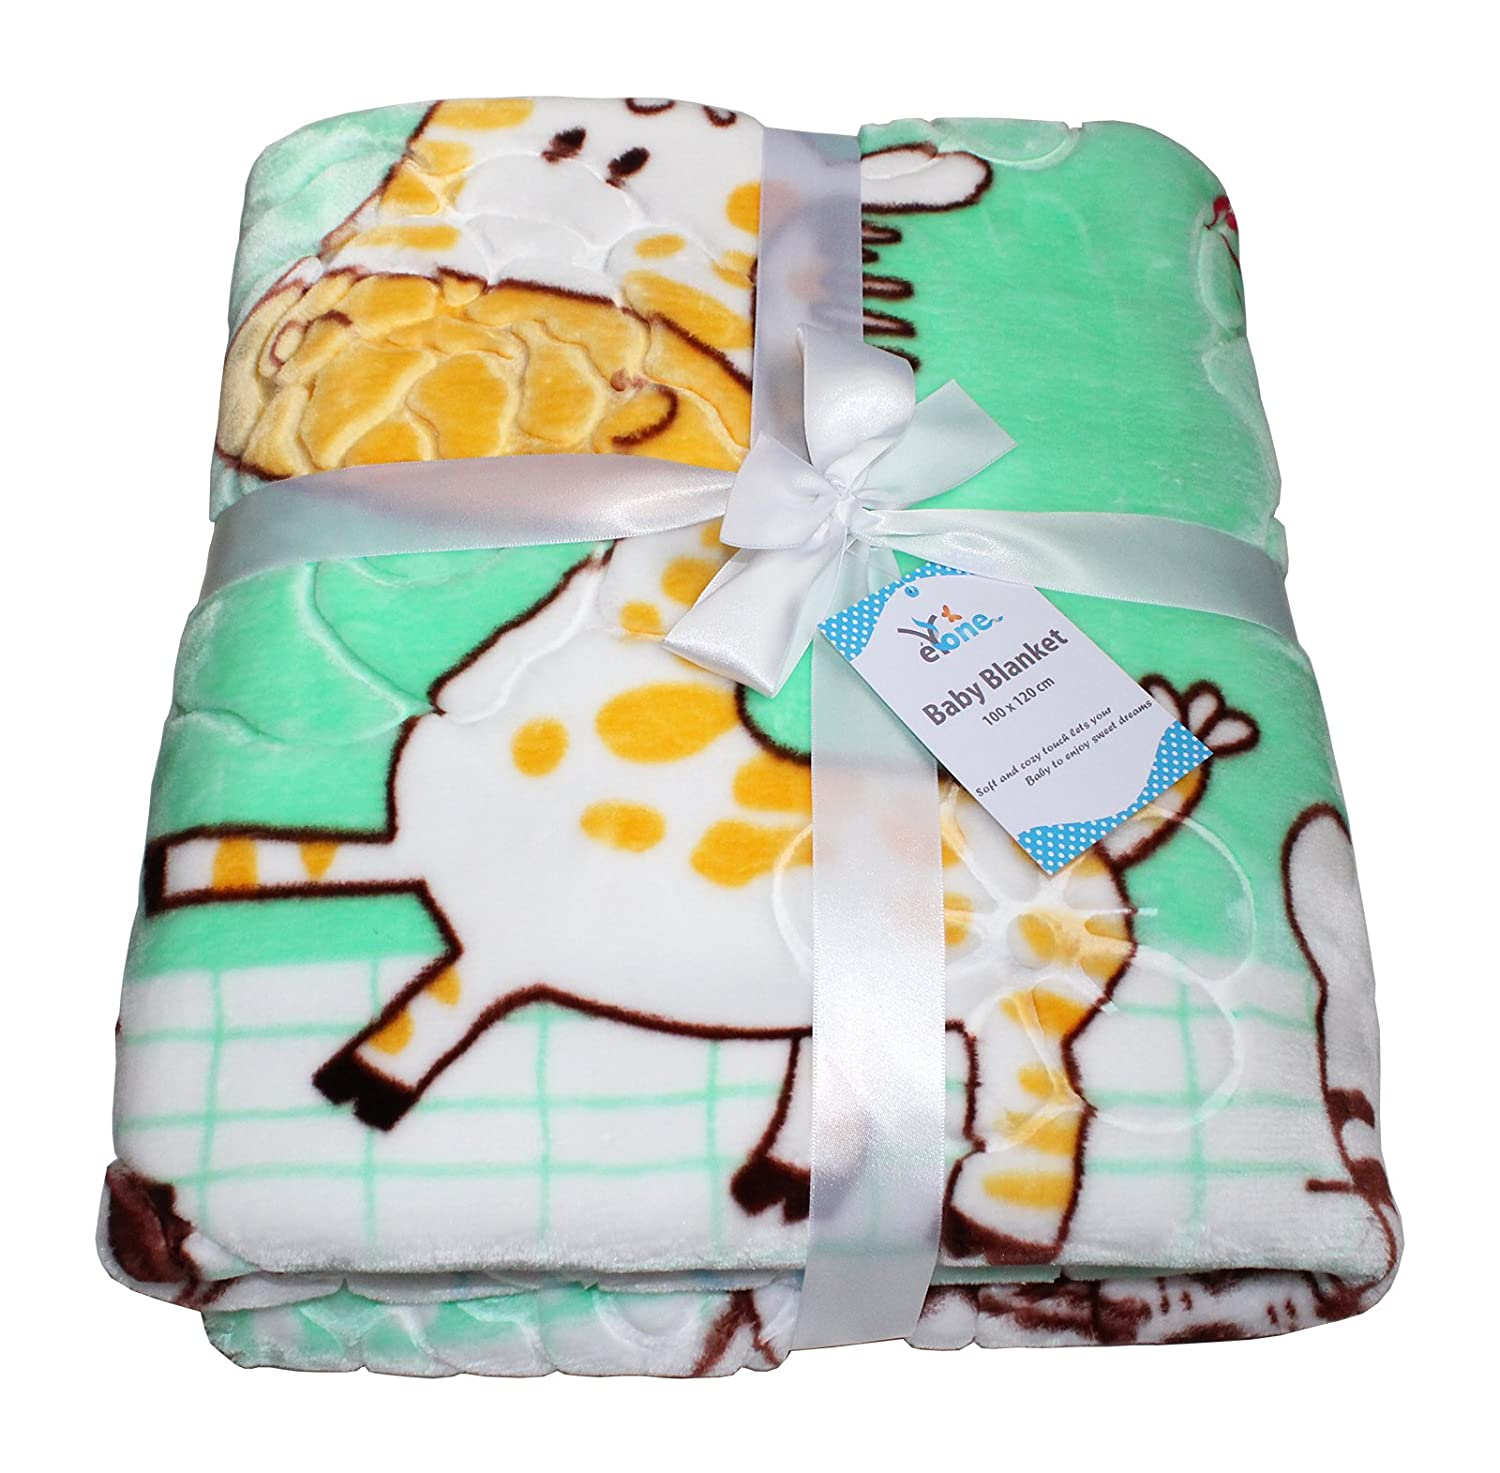 Boy & Girl Baby Blanket Fleece Super Soft With Animal Print, Luxury (Green, 100x110cm) eYone Manufacturing